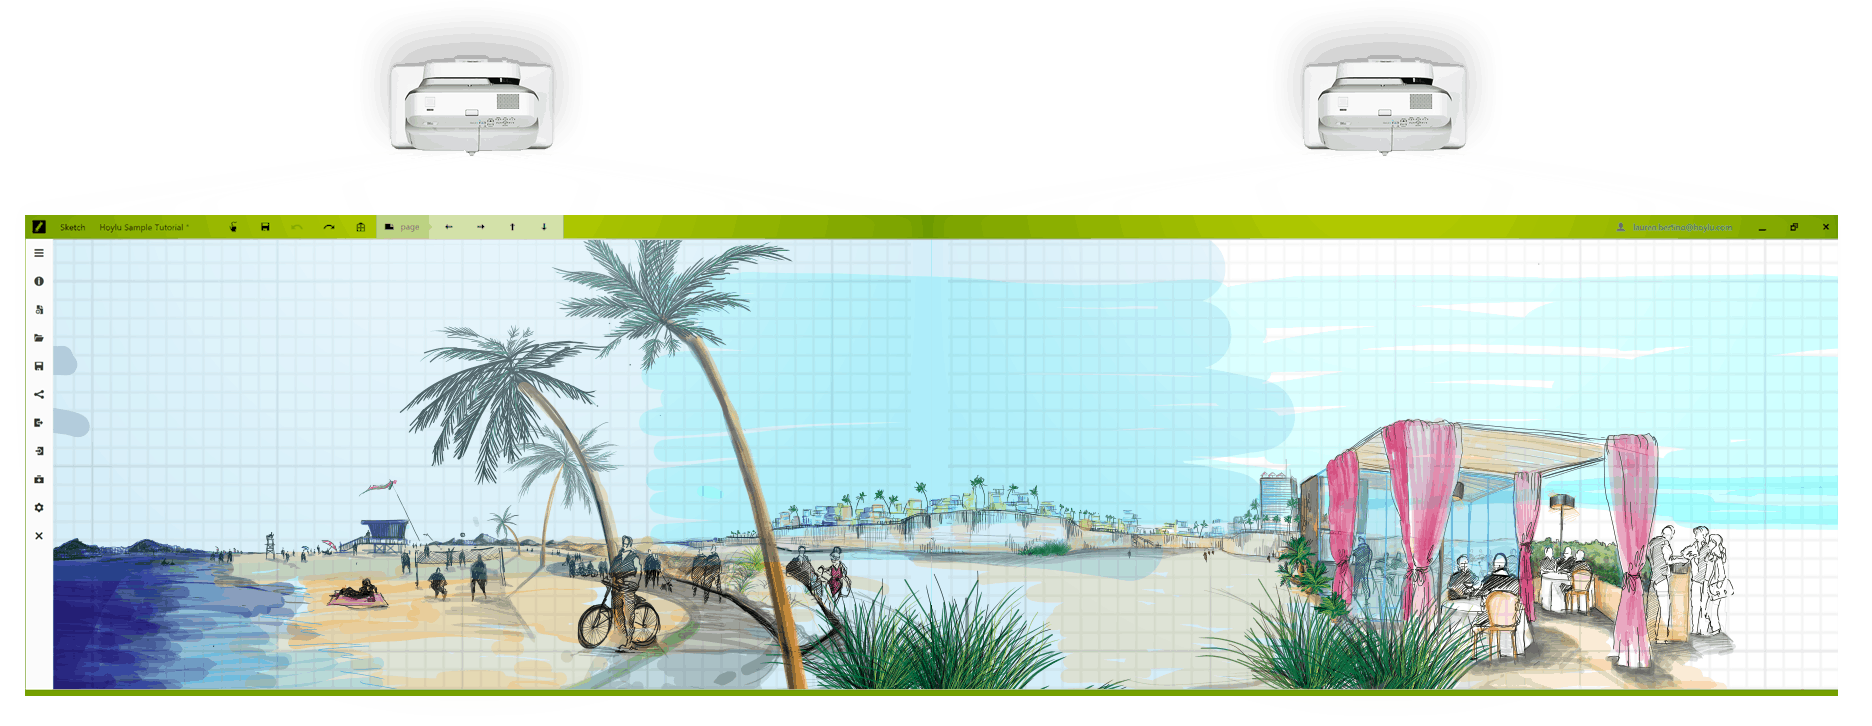 Hoylu Connected Workspaces™ application beach scene sketch displayed on HoyluWall digital board